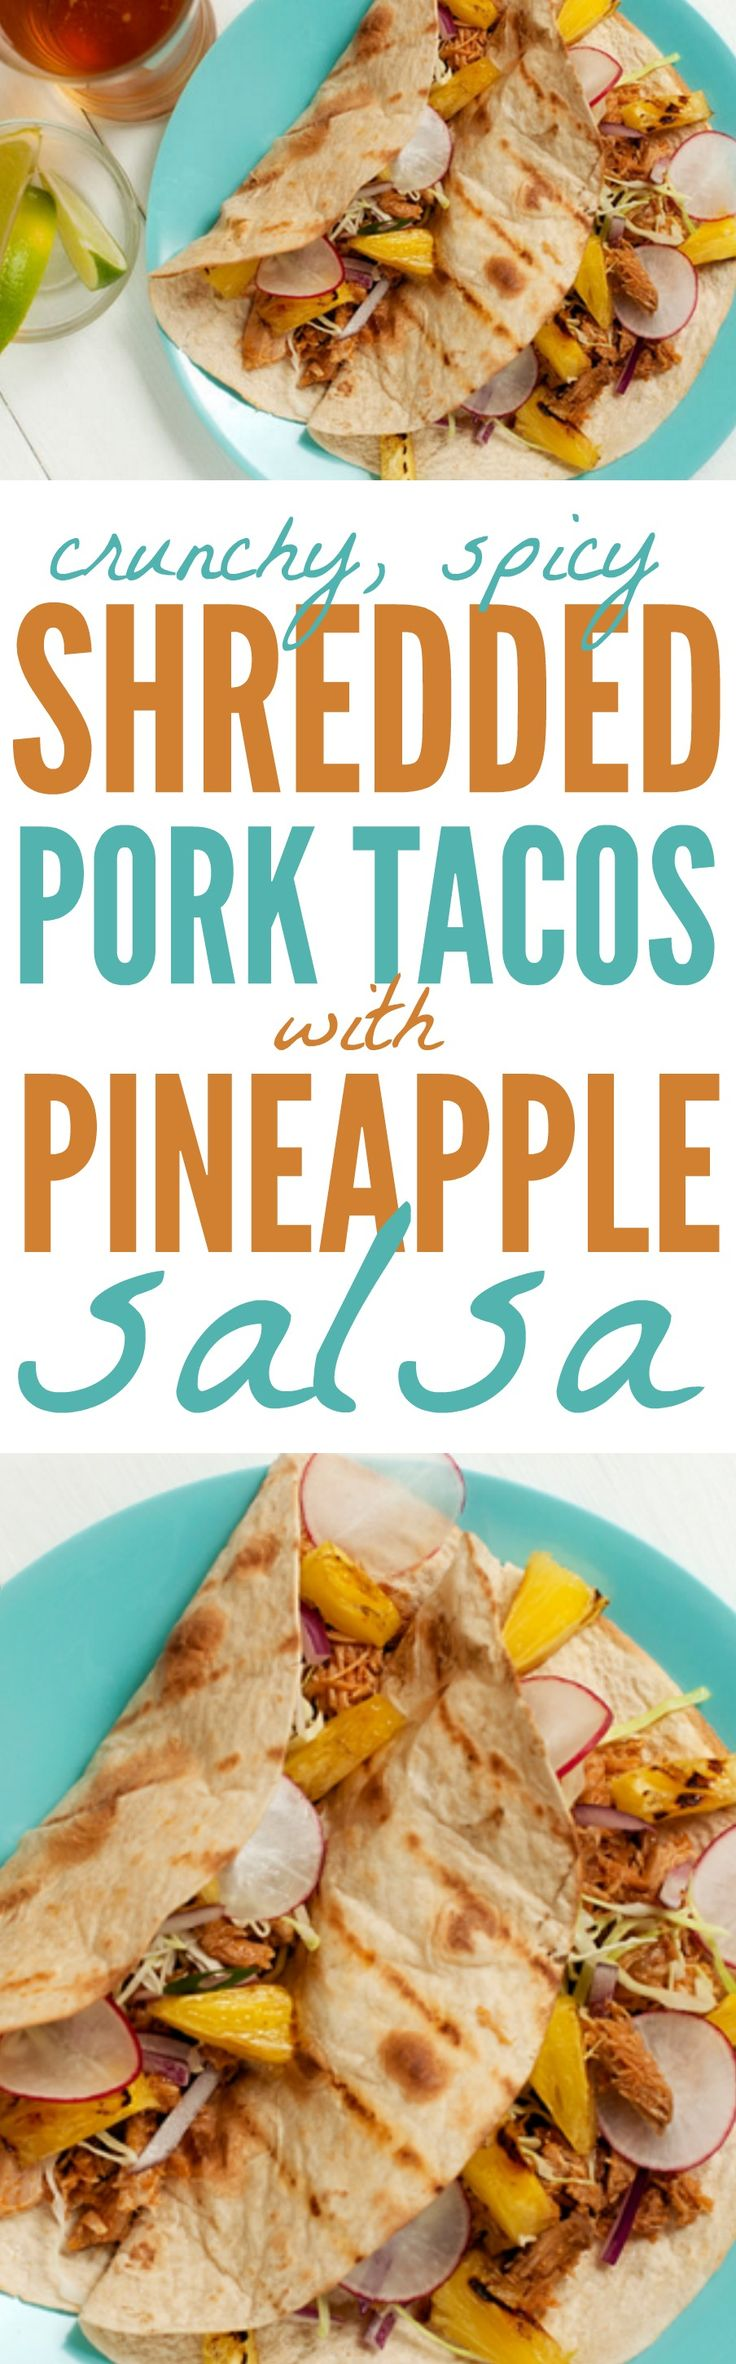 21 Day Fix Shredded Pork Tacos with Pineapple Salsa #21dayfix #21dayfixtacos #tacos #tacorecipes #porktacos #porktacorecipes #pineapplesalsa #cleaneating #cleaneatingtacos #cleaneatingporktacos #eatclean #cleaneatingrecipes #recipes #tacorecipes